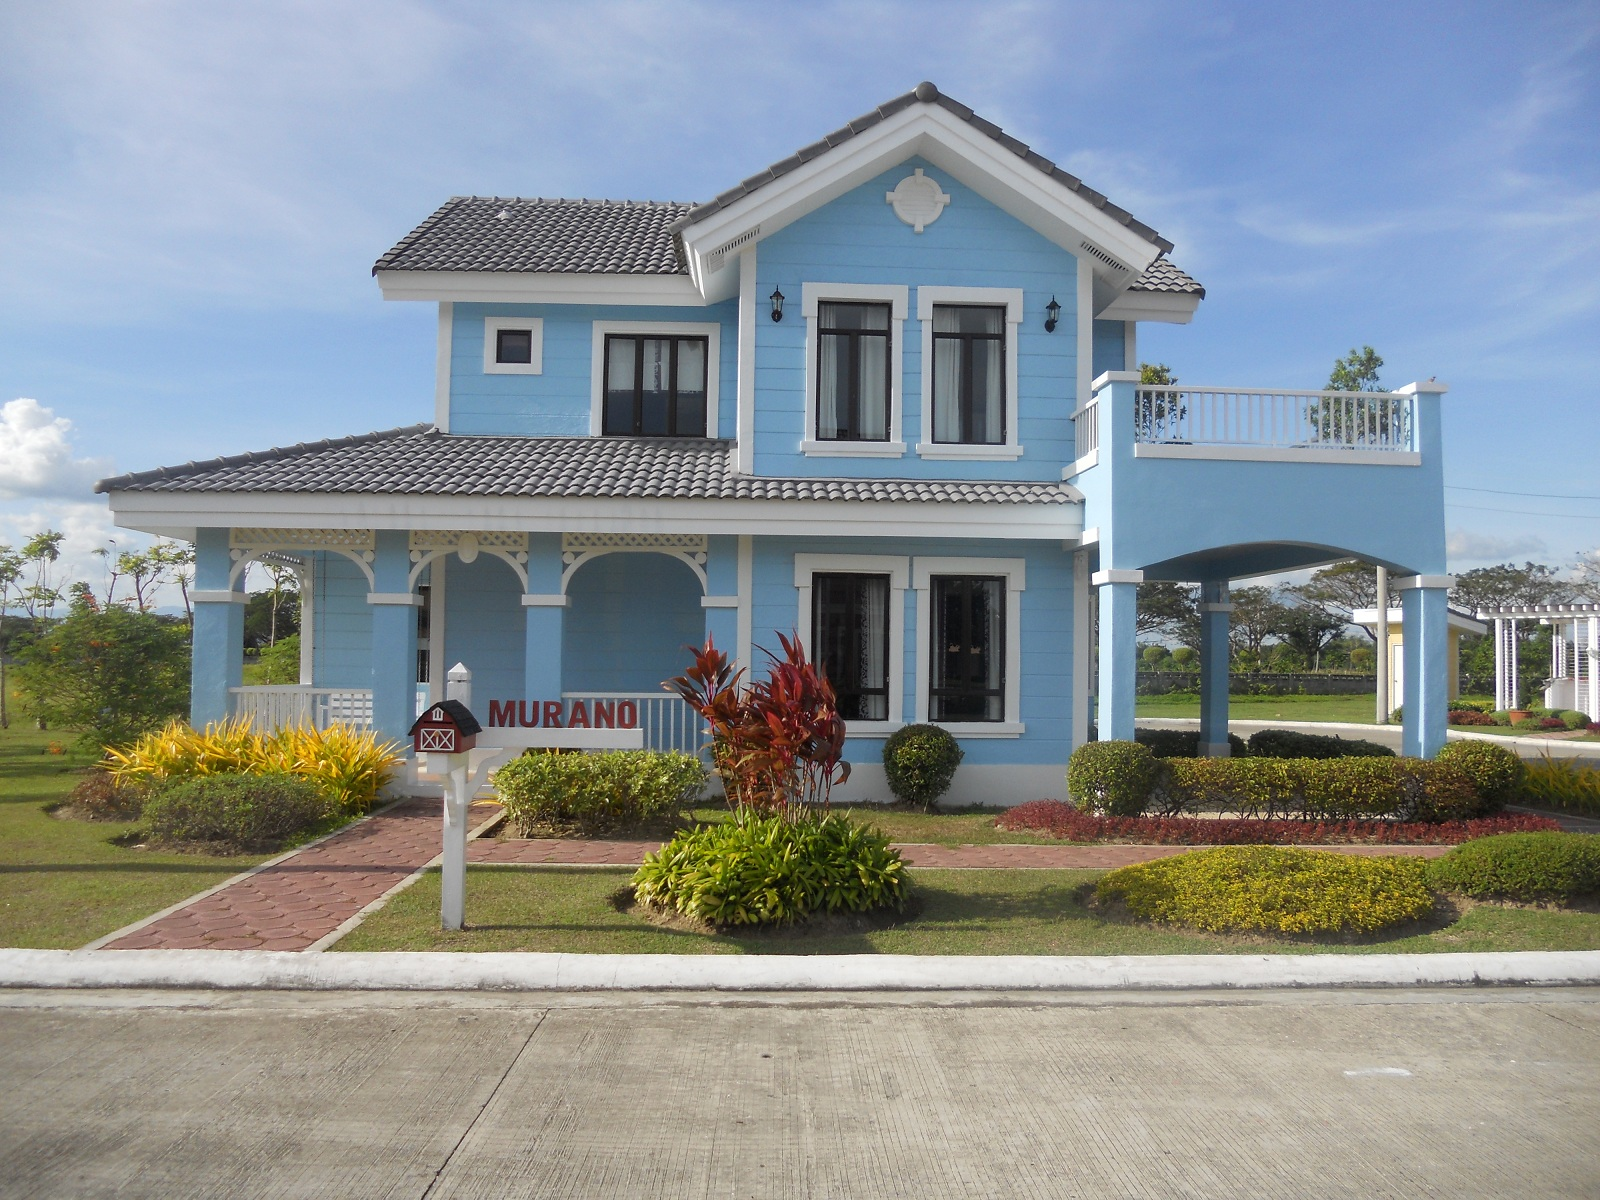 murano model house of savannah crest iloilo by camella